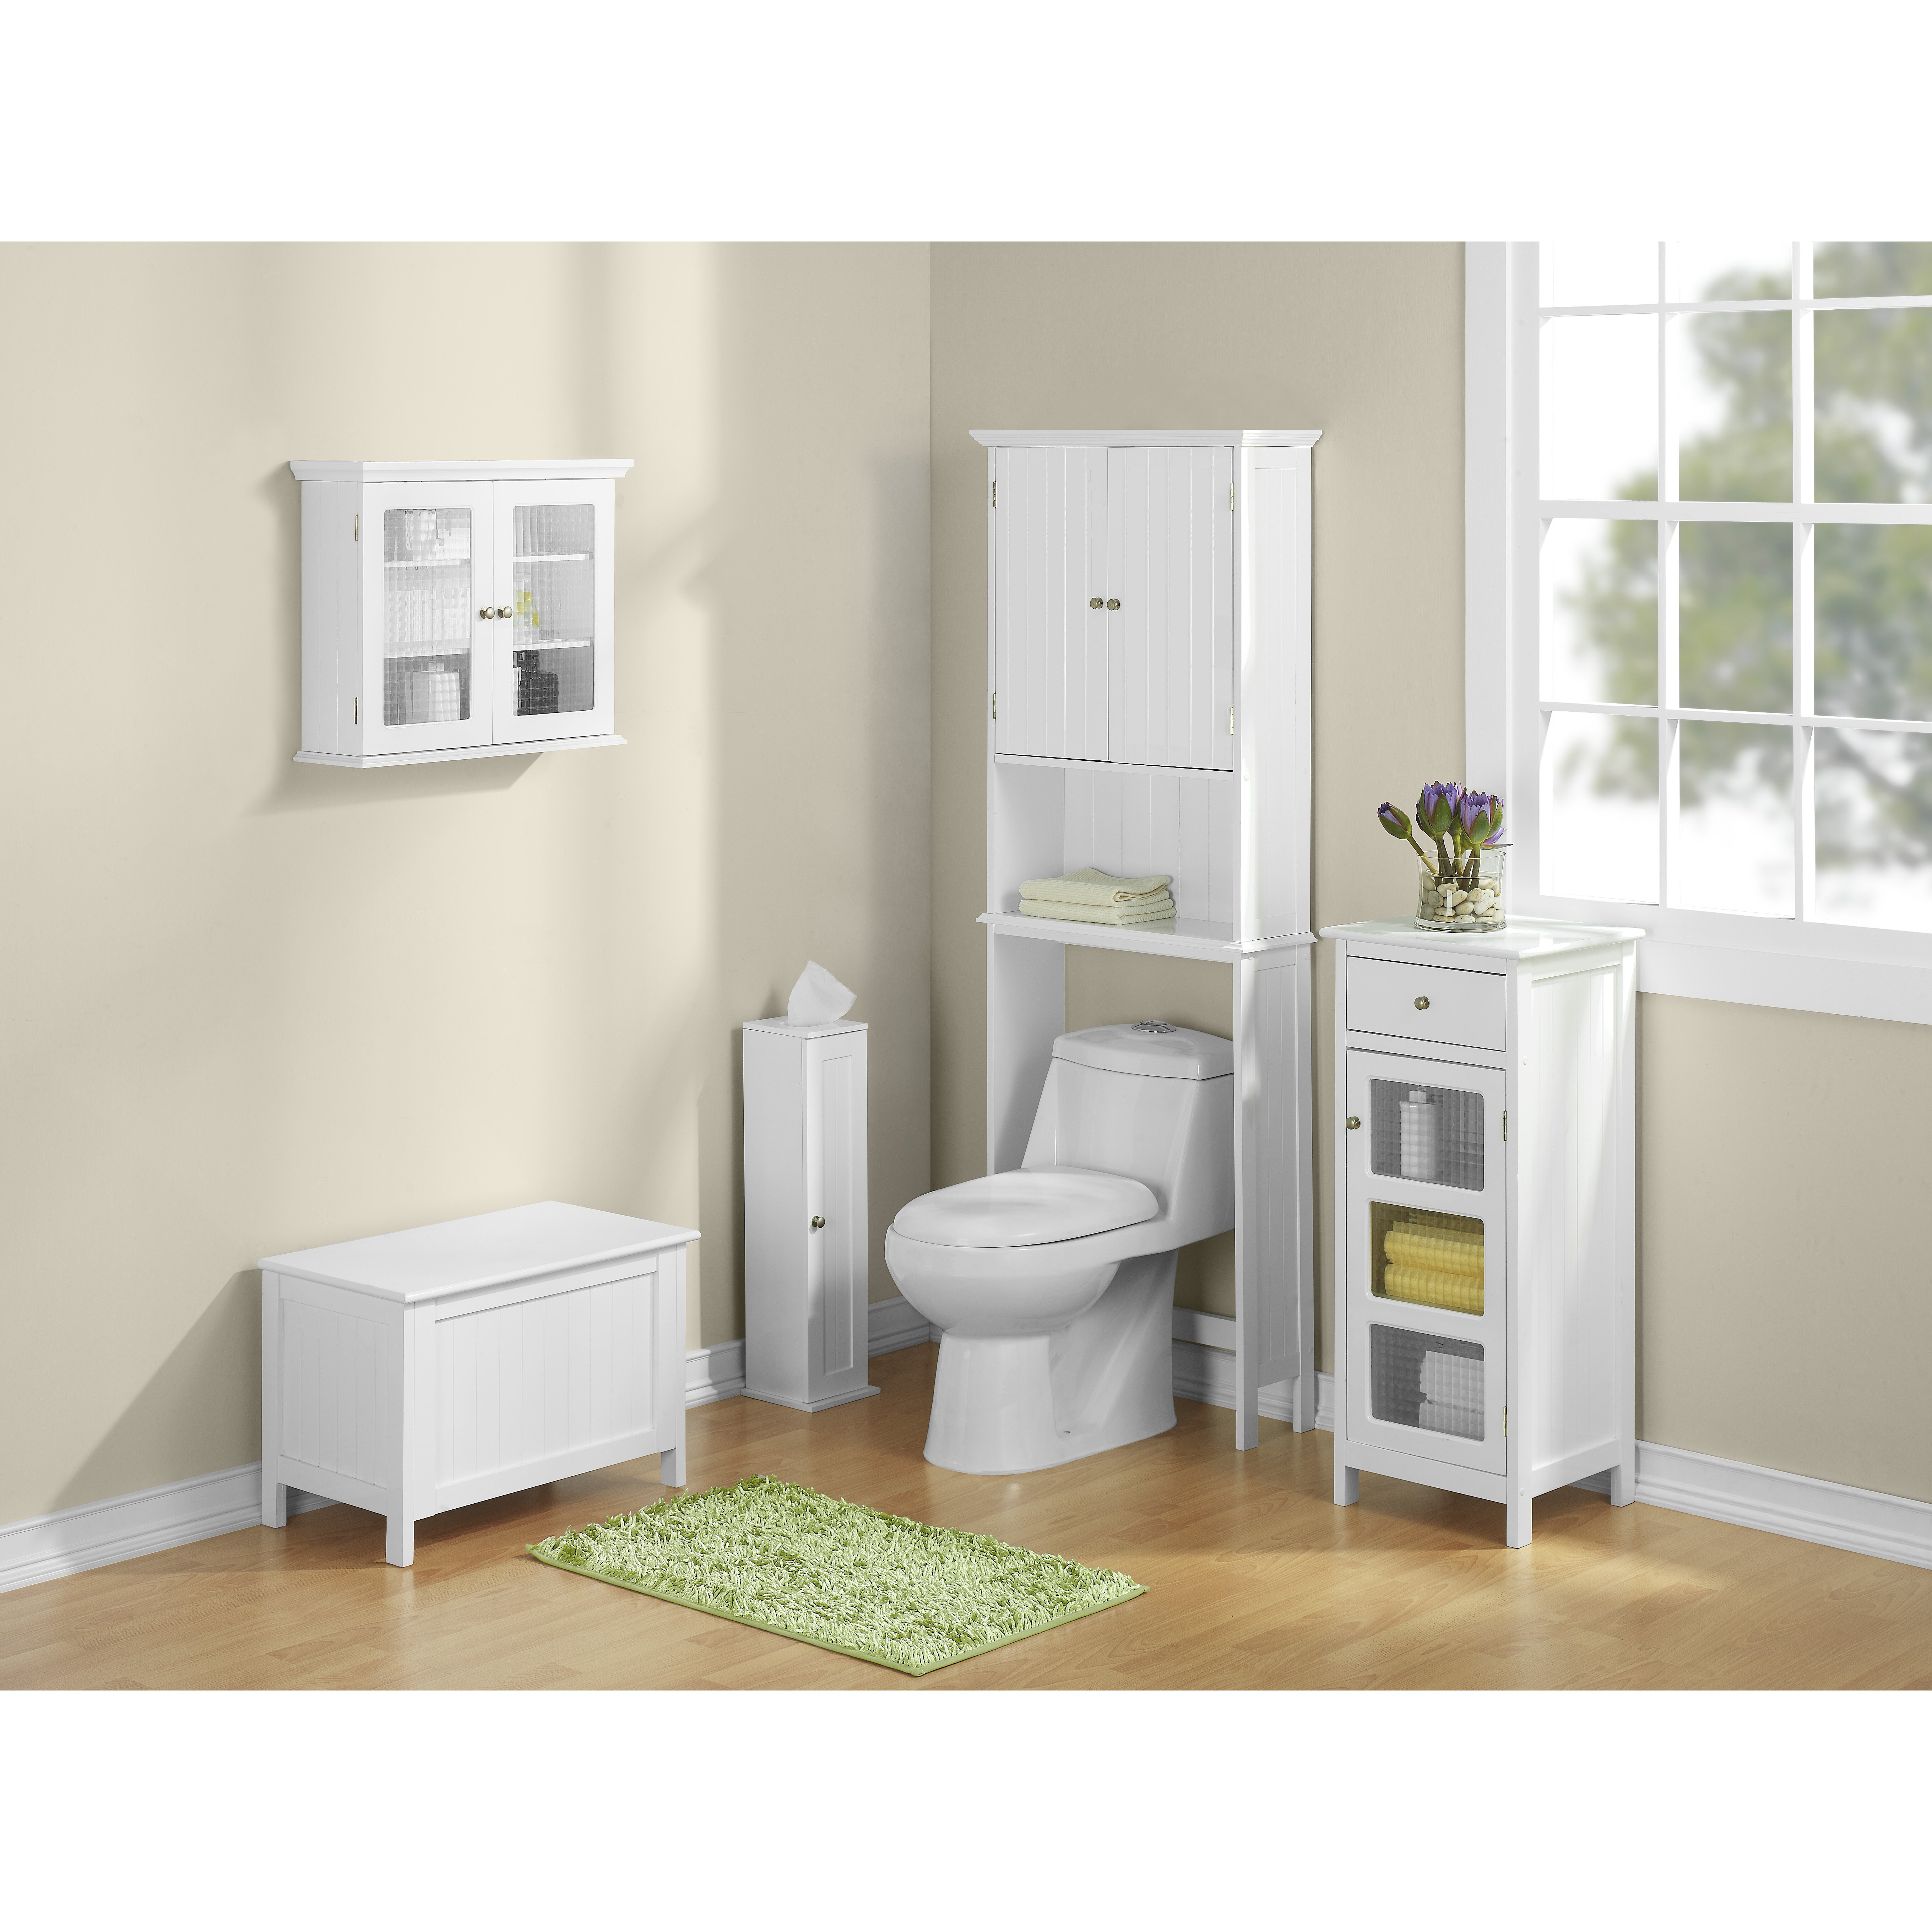 Bathroom space saver 24 5 x 62 5 free standing over the - Space saver furniture for bathroom ...